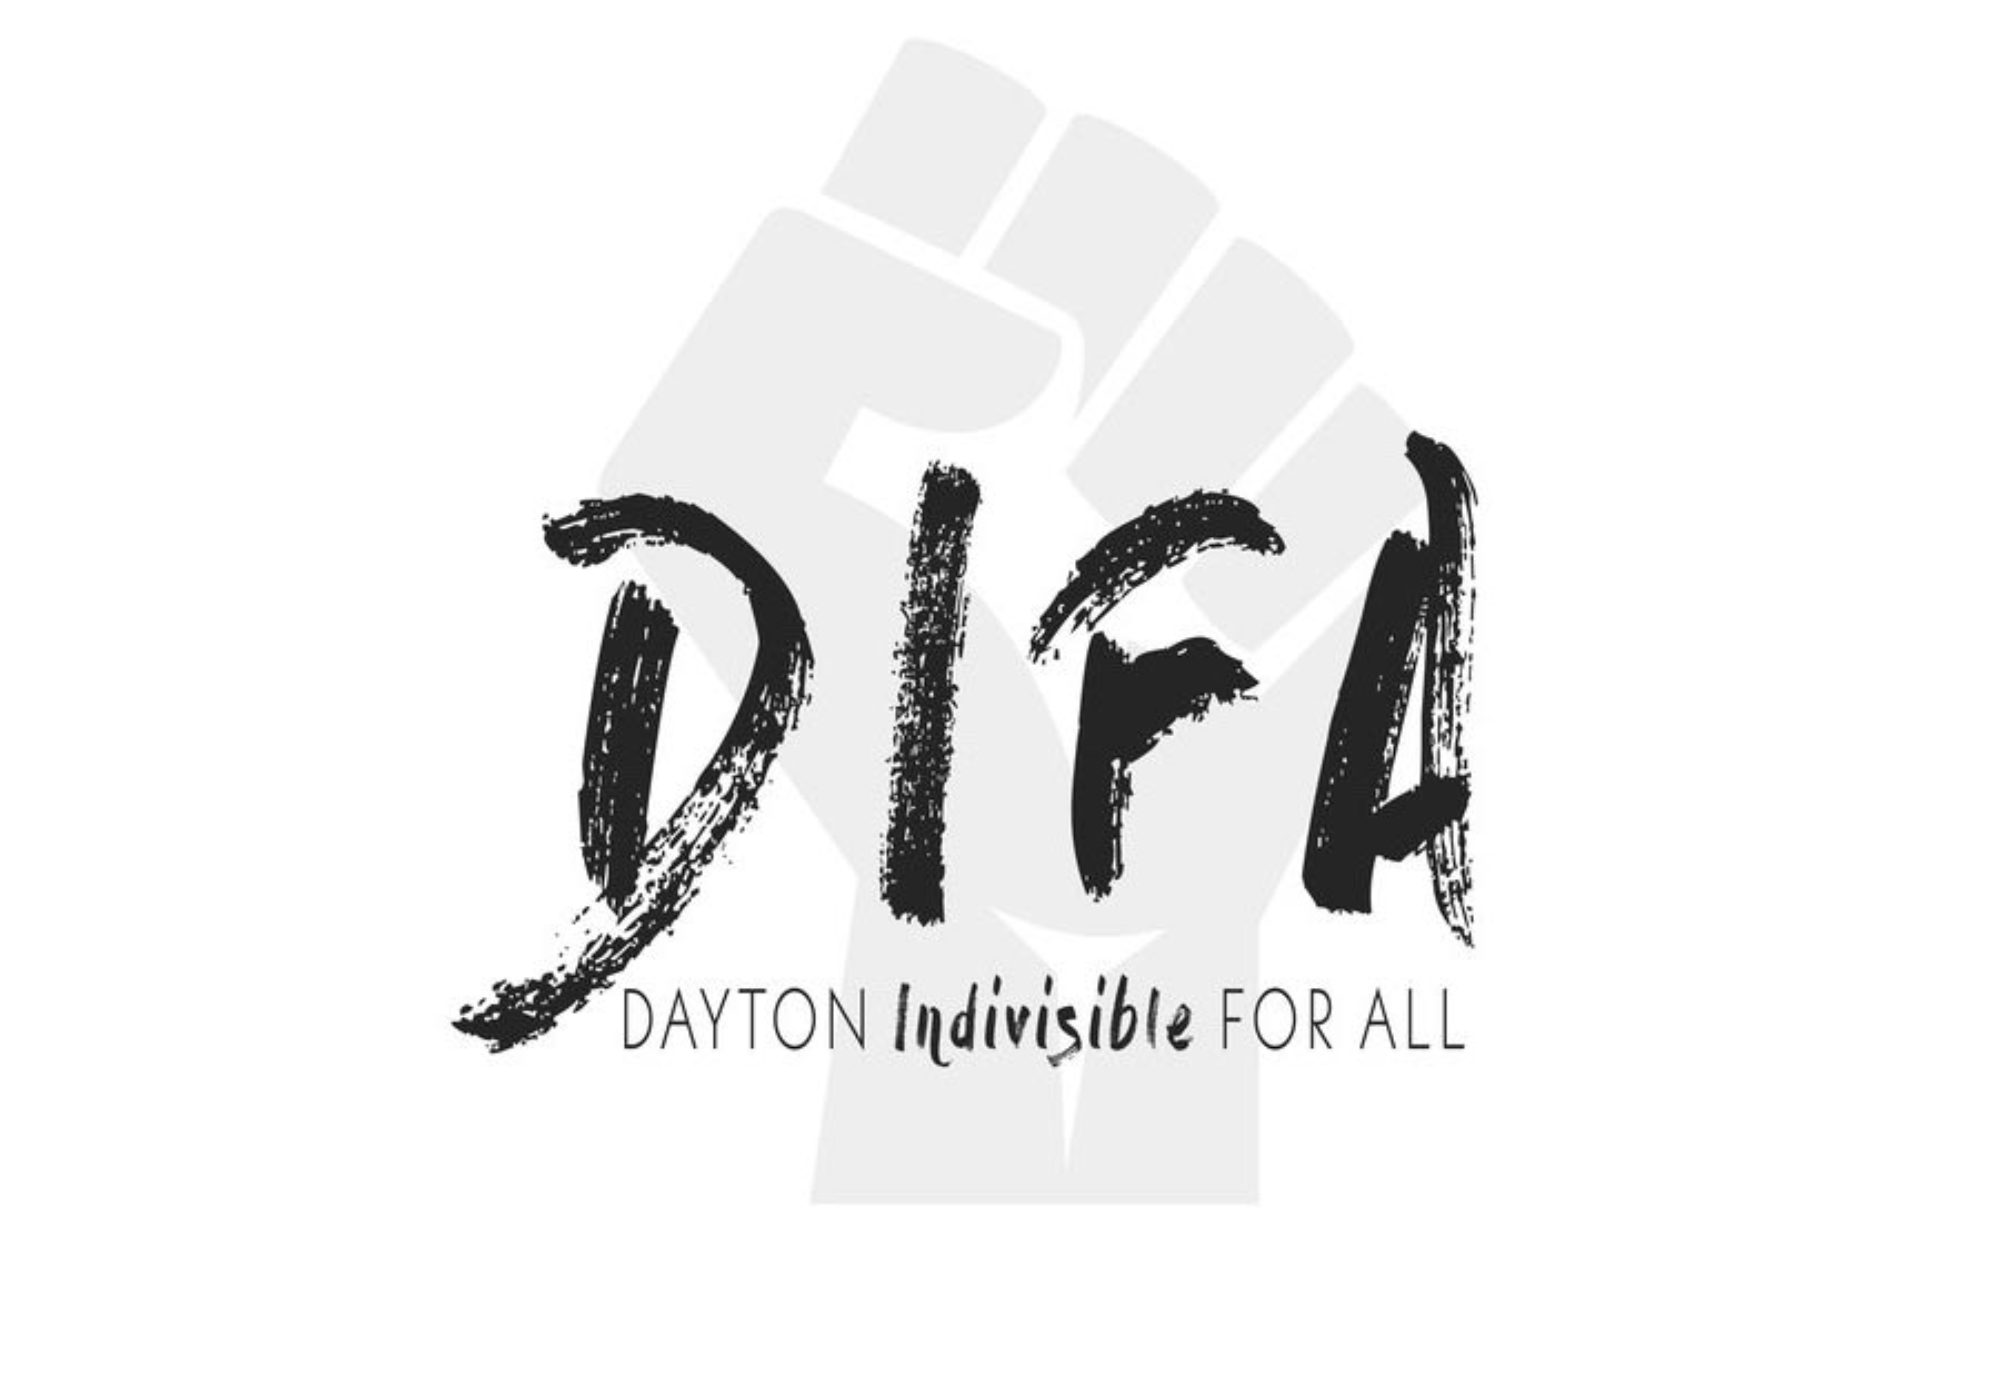 Dayton Indivisible for All